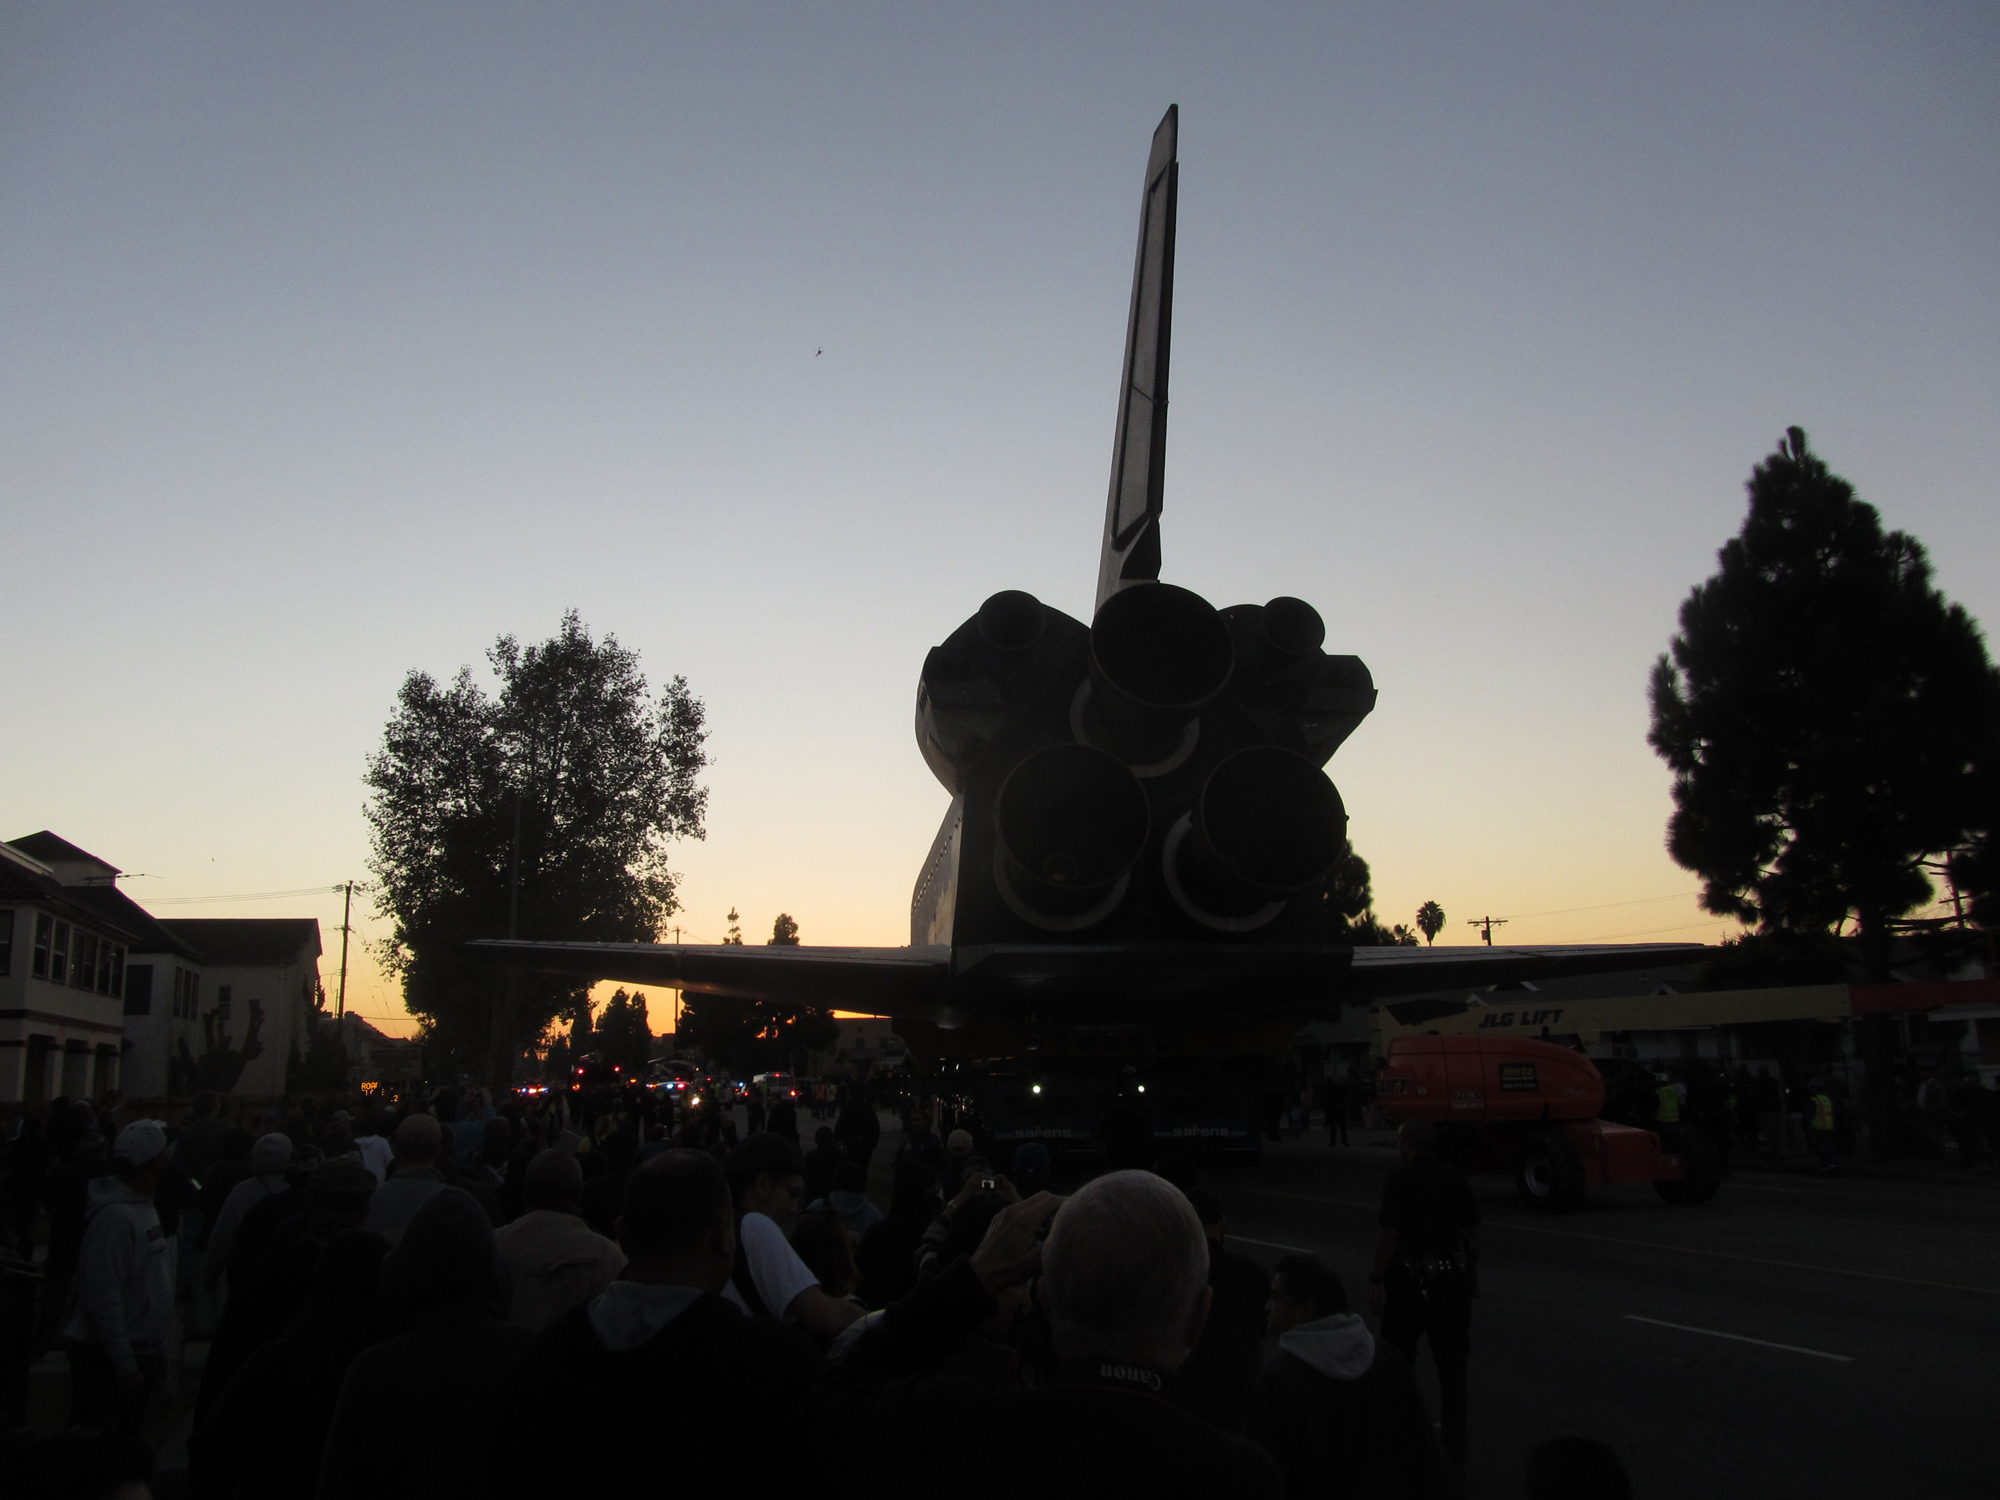 Shuttle Endeavour Rolls on